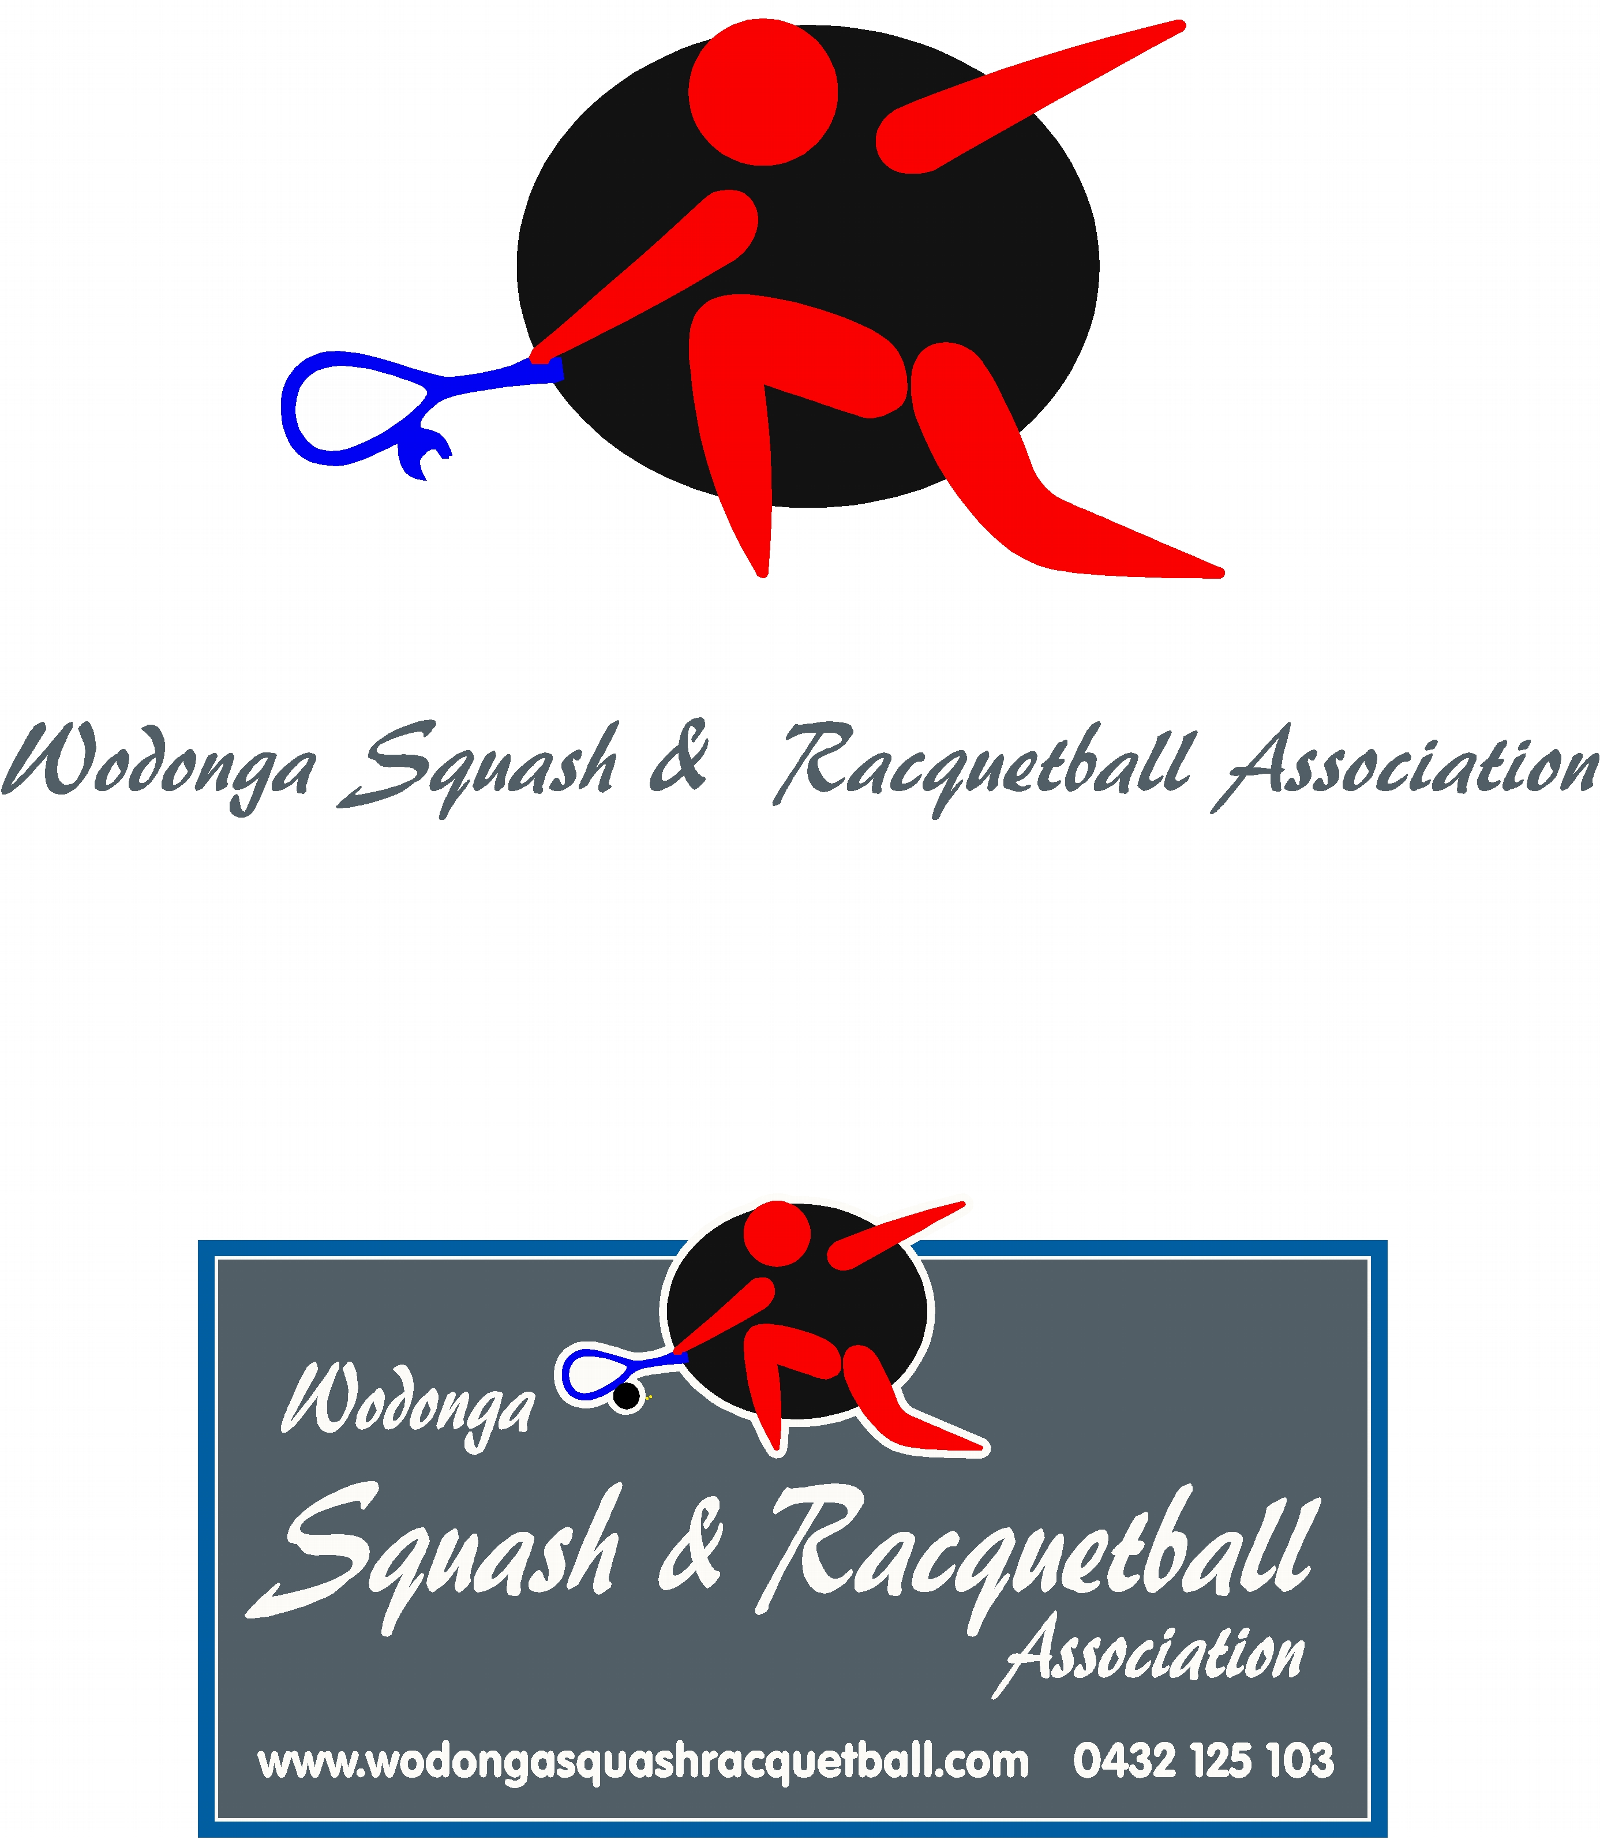 Wodonga Squash and Racquetball Association